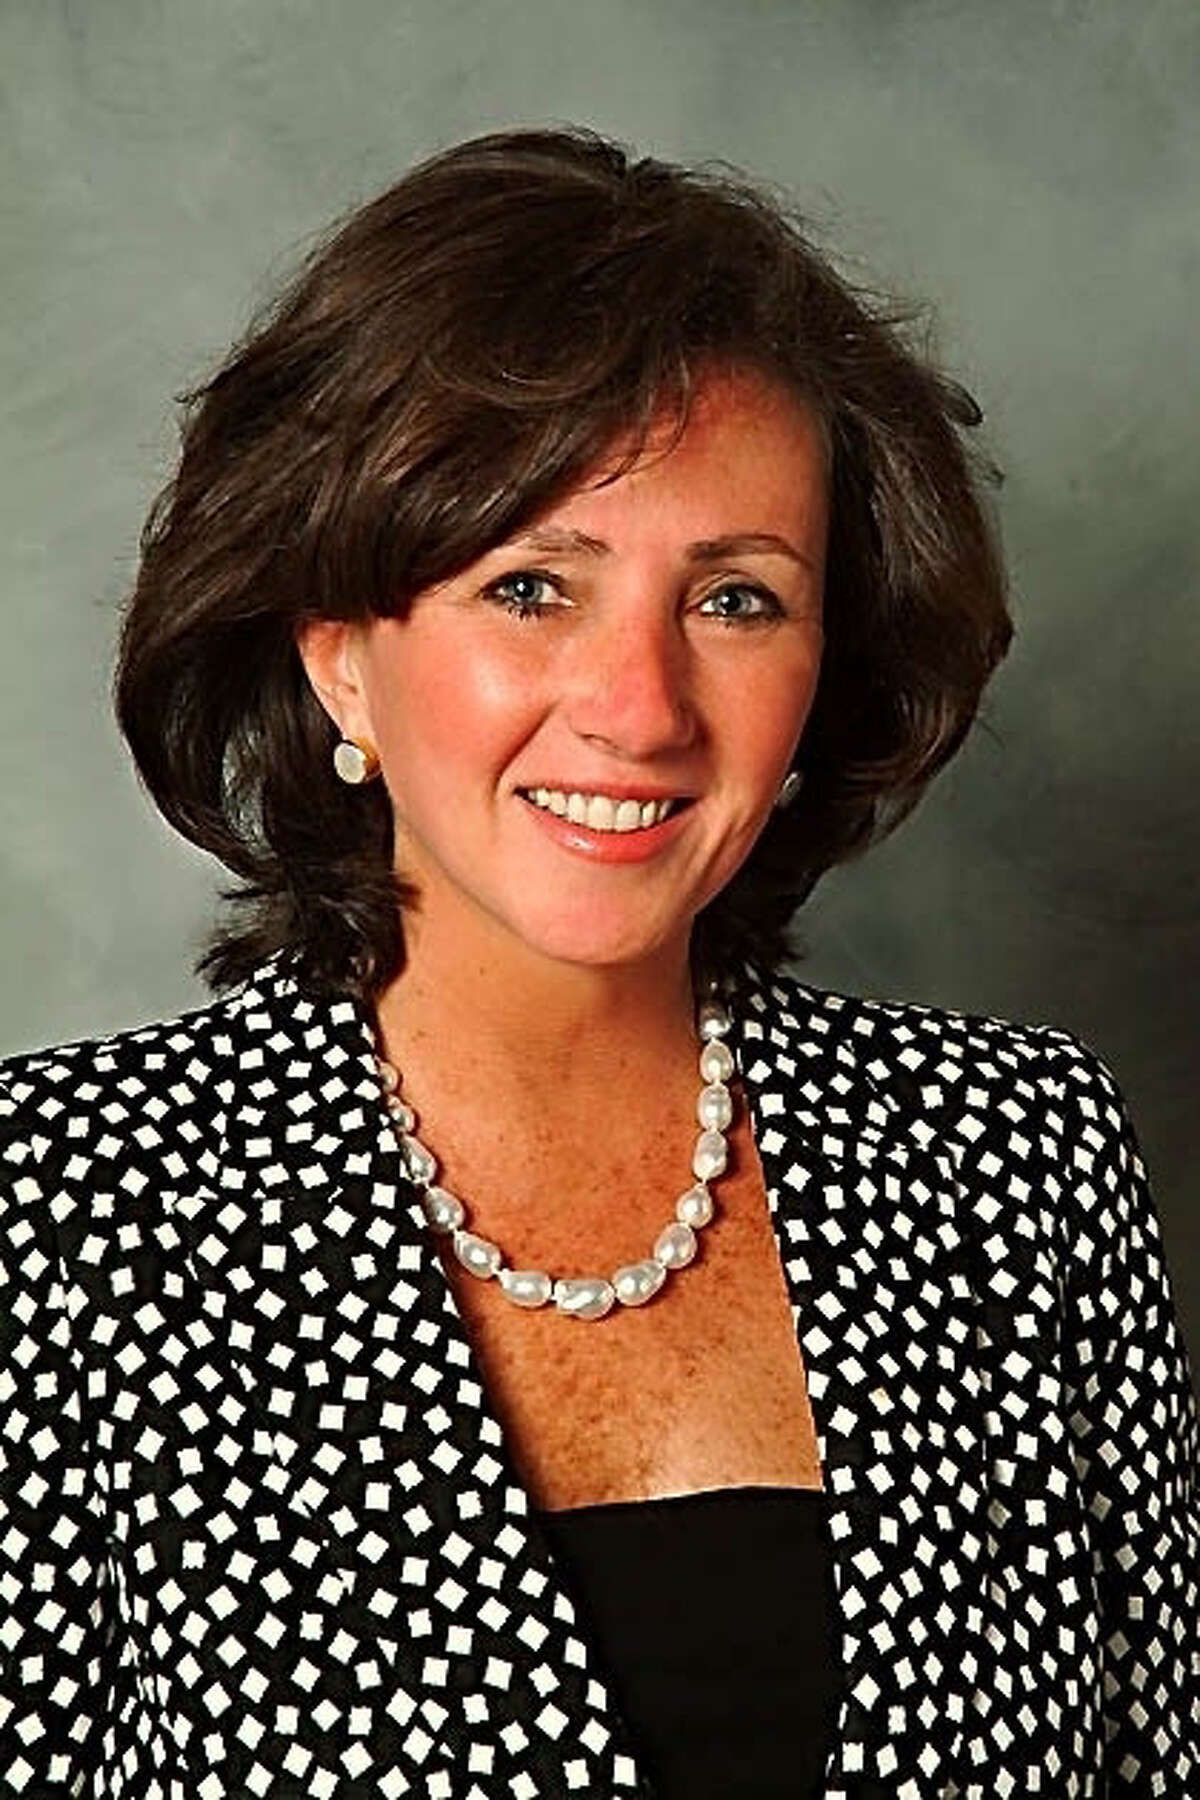 Peyton R. Patterson, the former CEO of NewAlliance Bancshares has been named CEO of New Canaan-based BNC Financial Group.